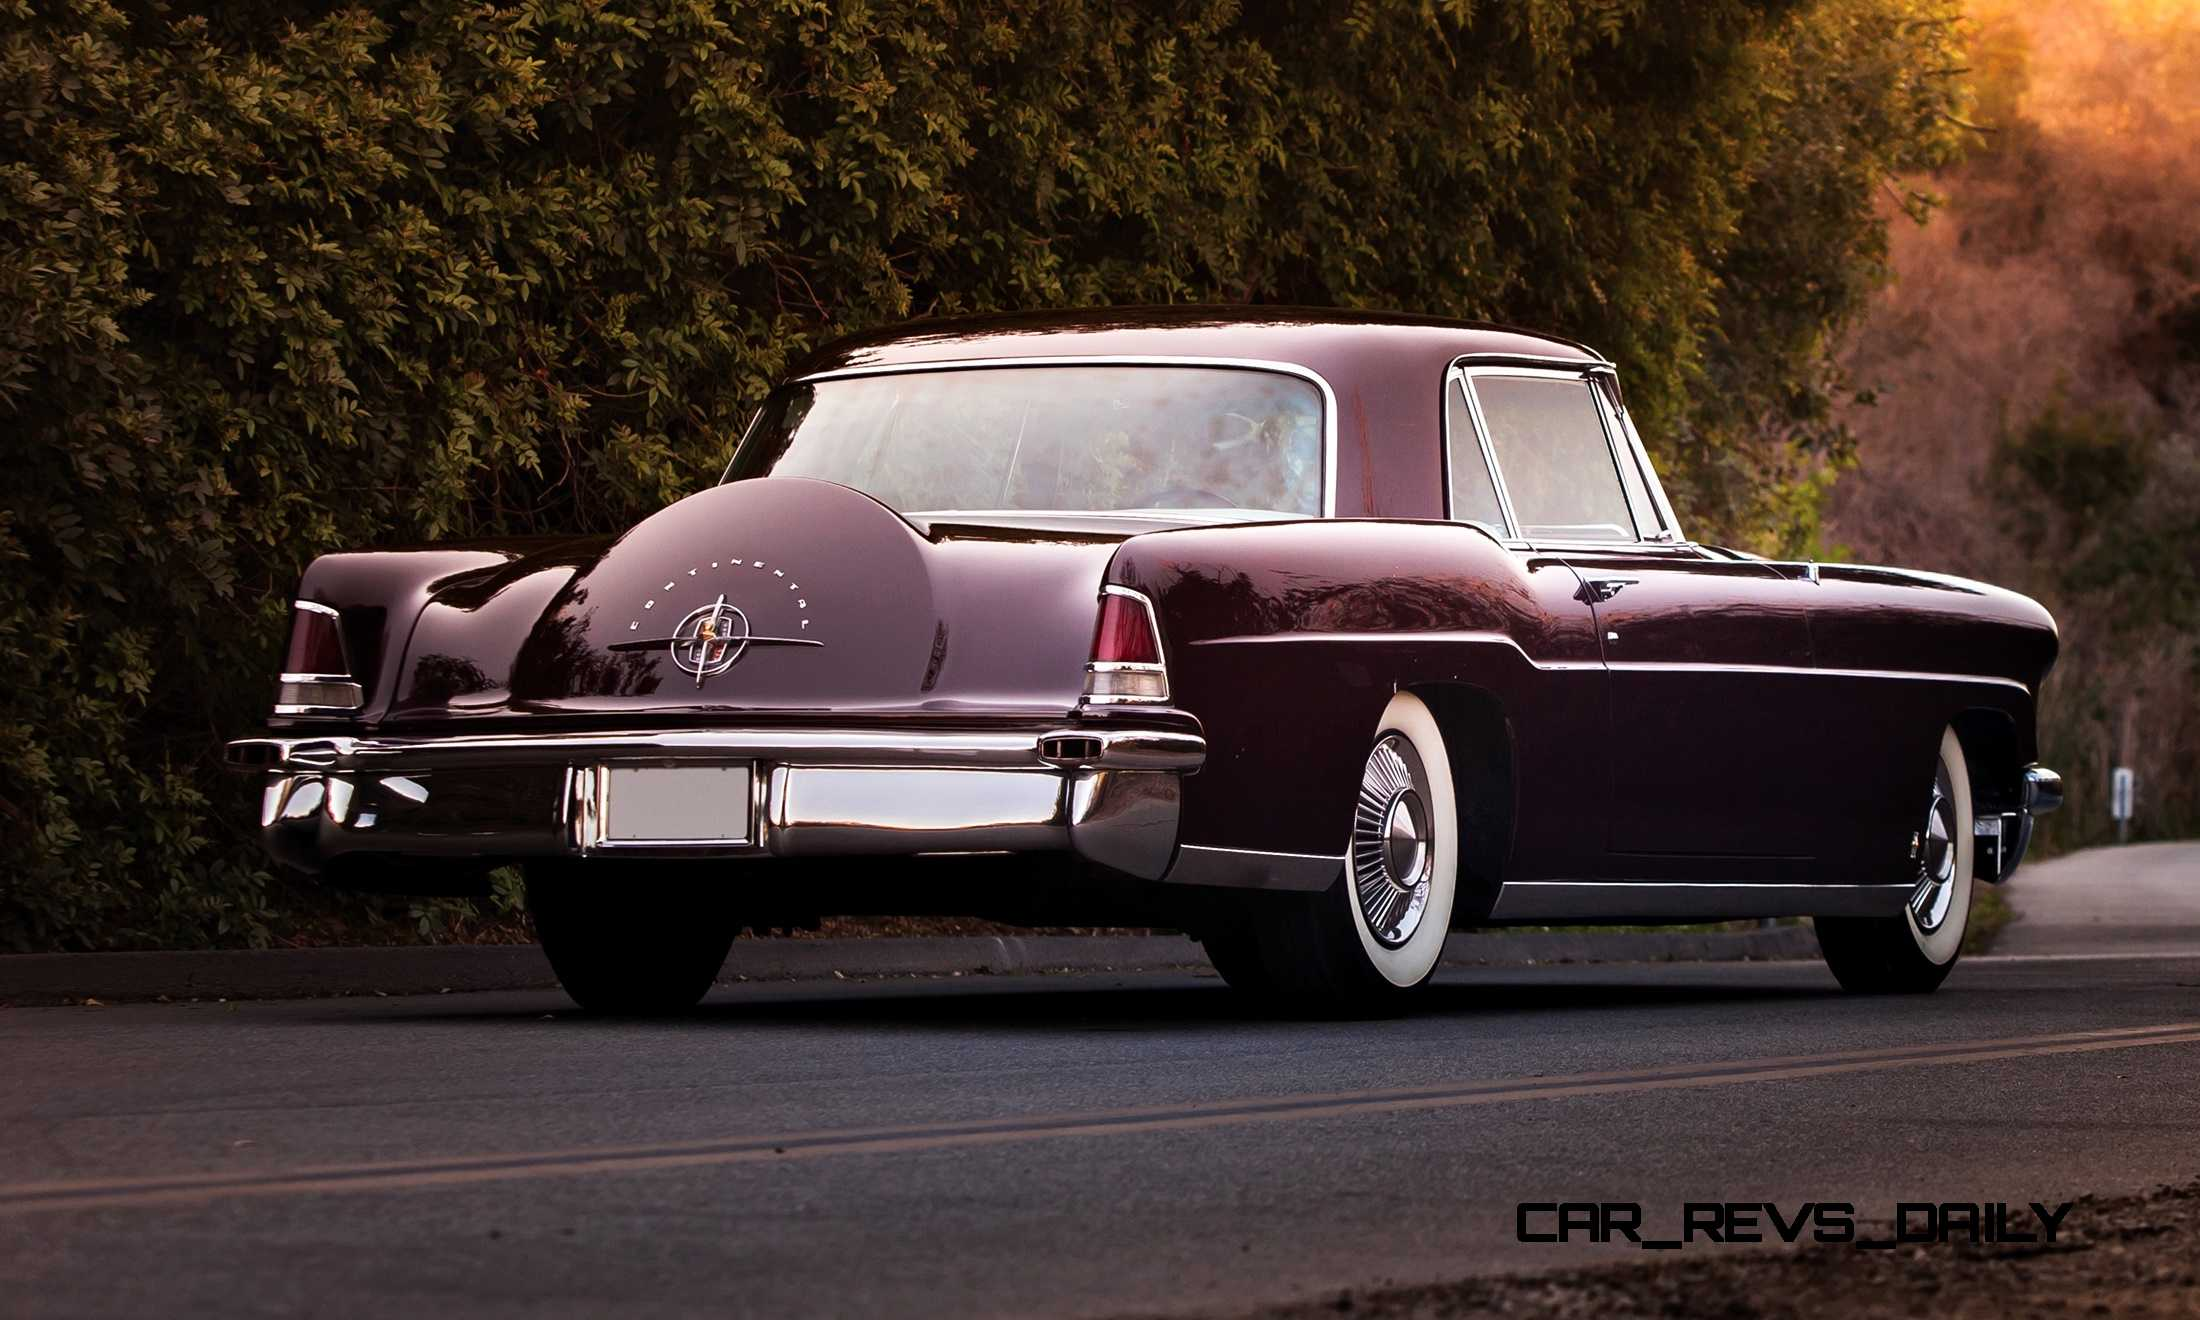 1956 Lincoln Mark II Full hd wallpapers